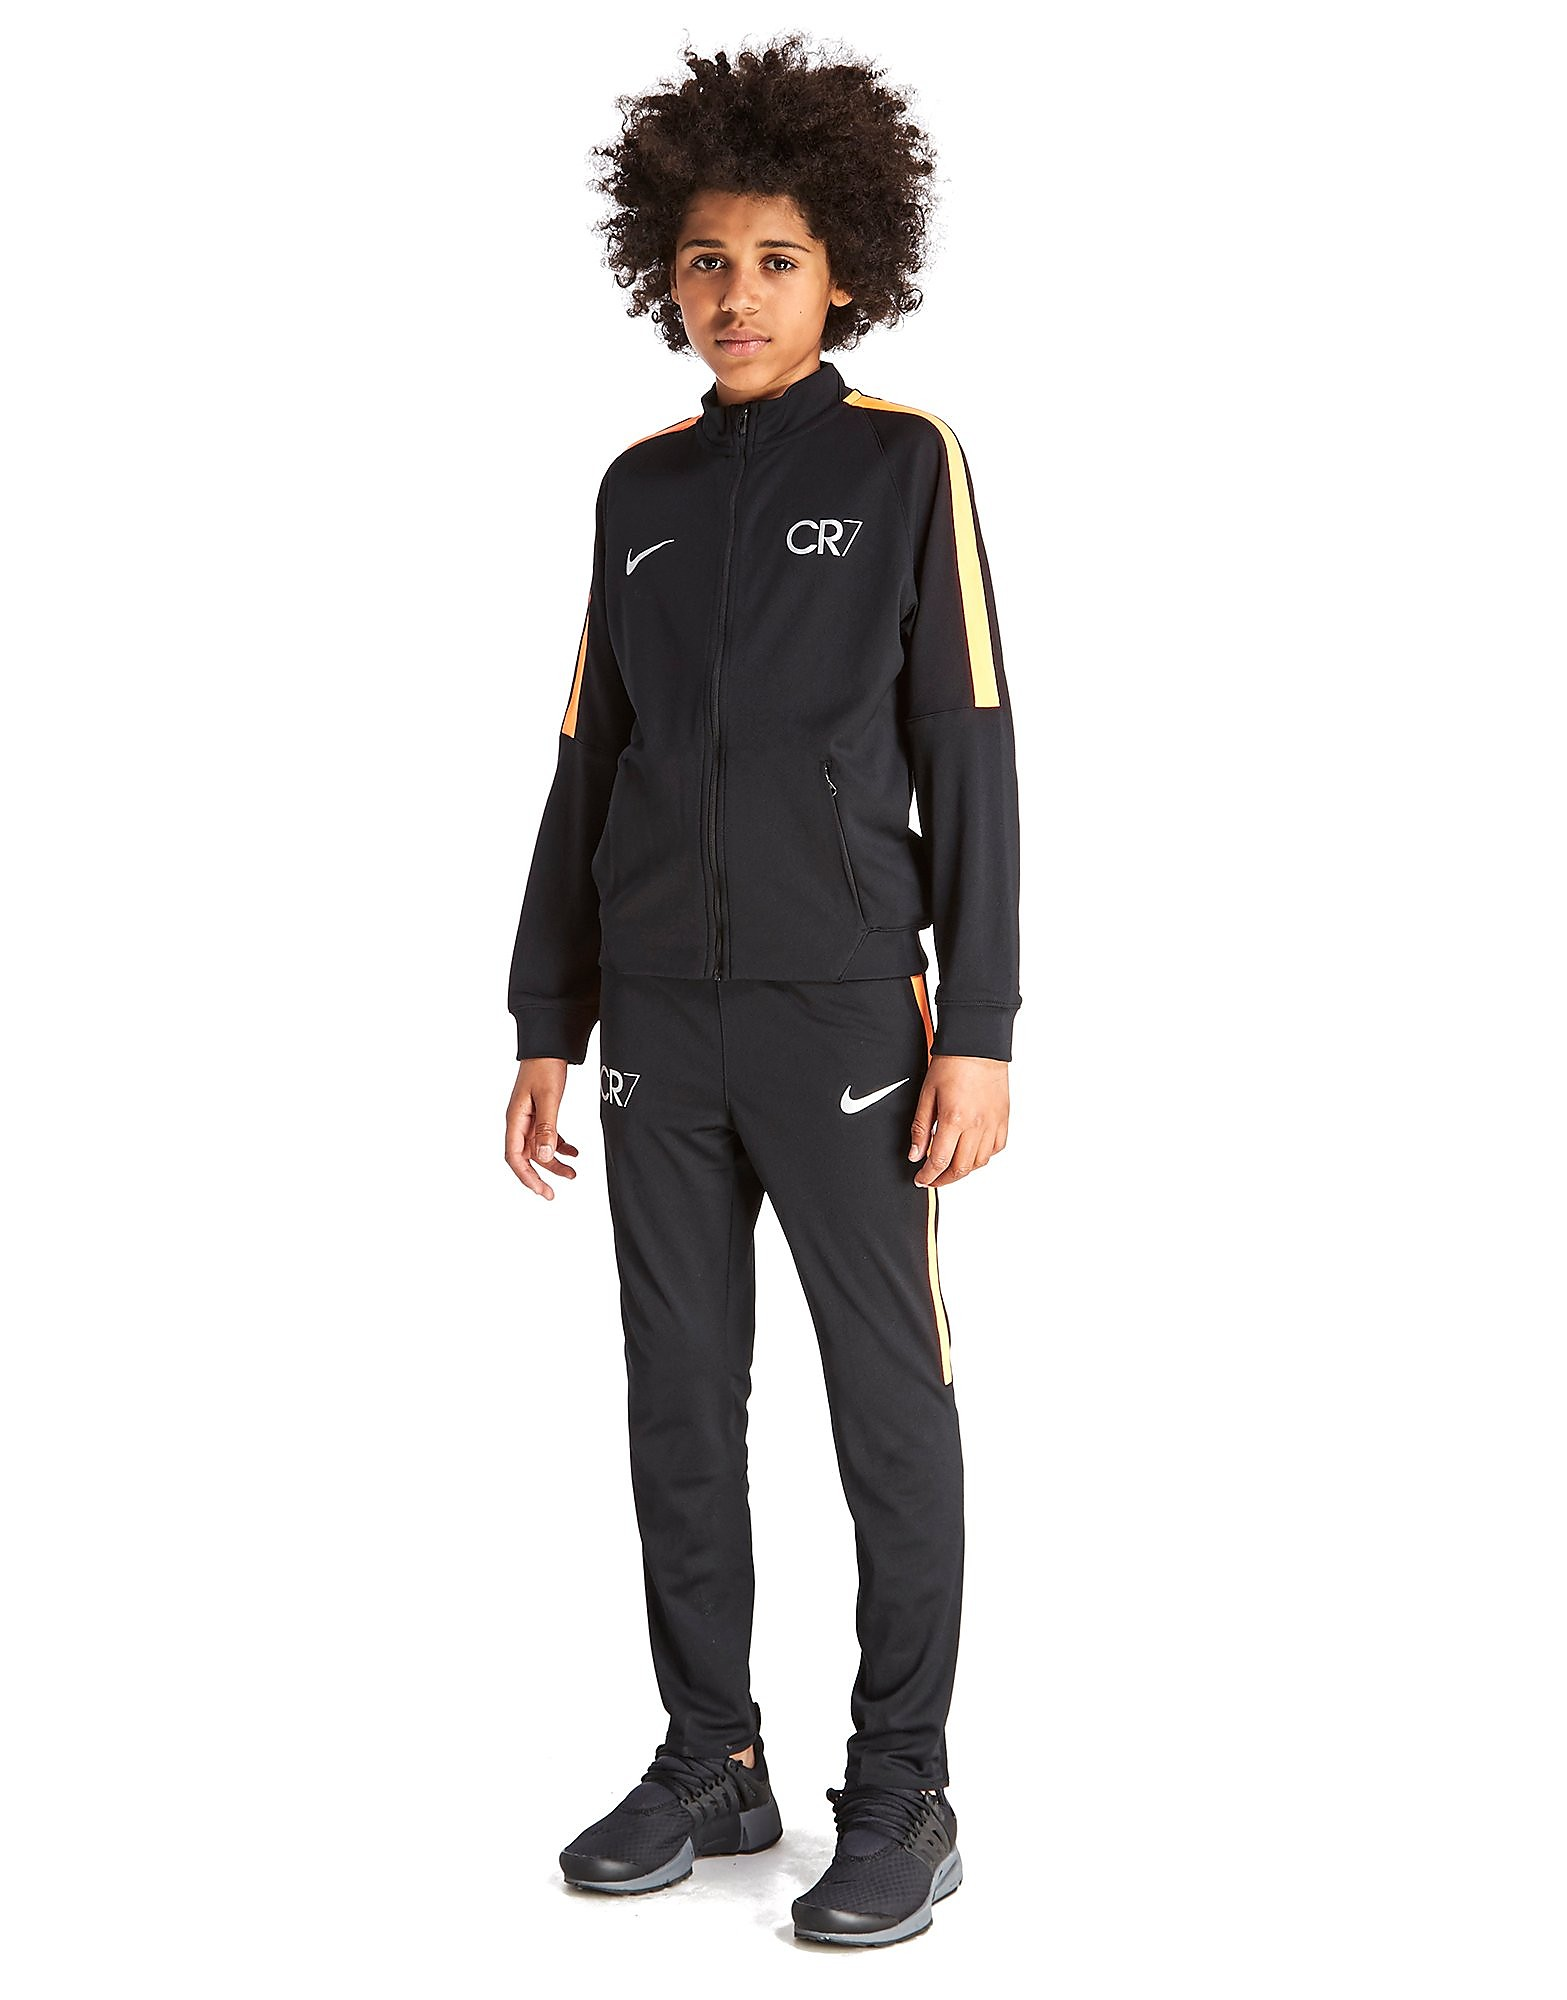 Nike Ensemble de survêtement CR7 Junior